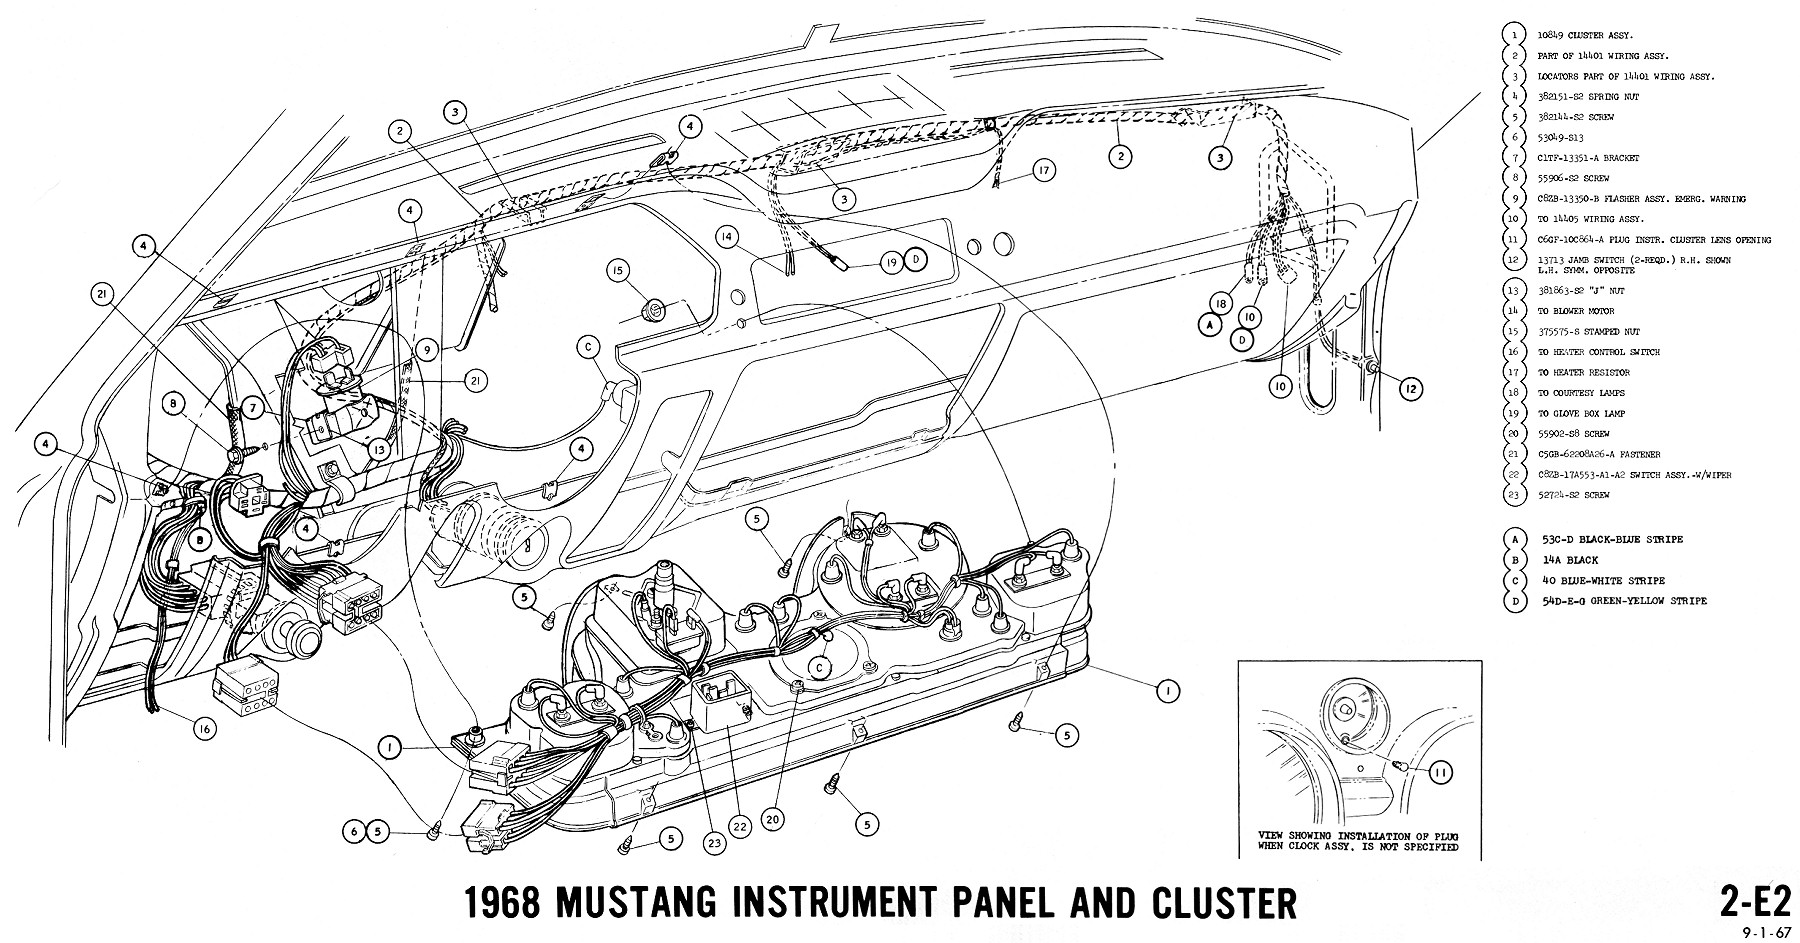 1968 mustang wiring diagram instruments 2 66 mustang wiring diagram 1966 mustang dash wiring diagram 86 Mustang Wiring Diagram at panicattacktreatment.co